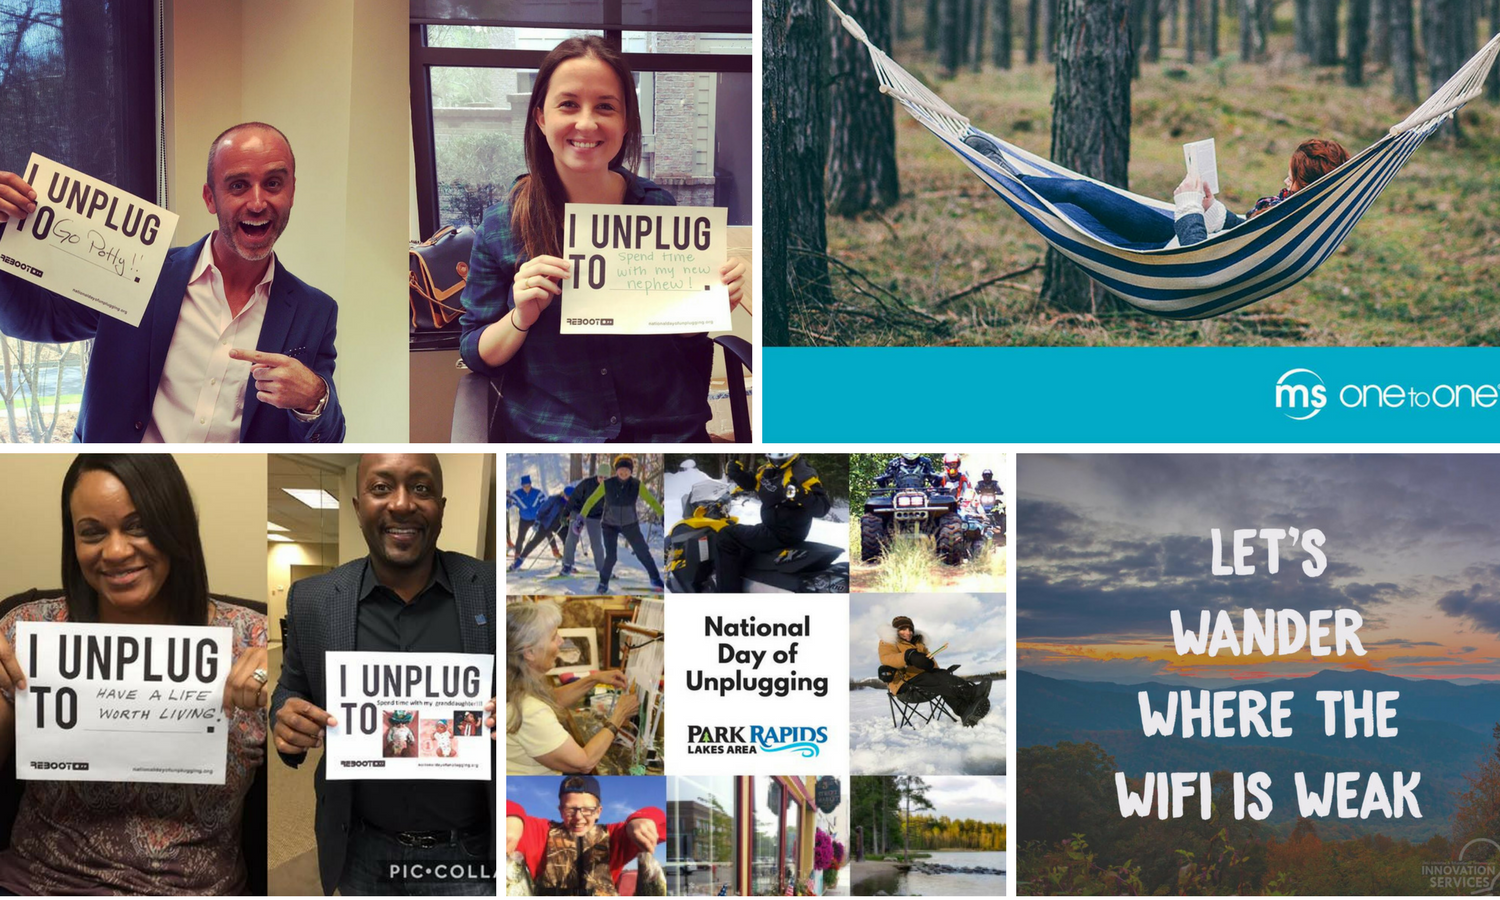 - We help with corporate events, too! Introduce a little work/life balance to your organization by creating an unplugged event for your colleagues and employees. We'll supply everything you need.